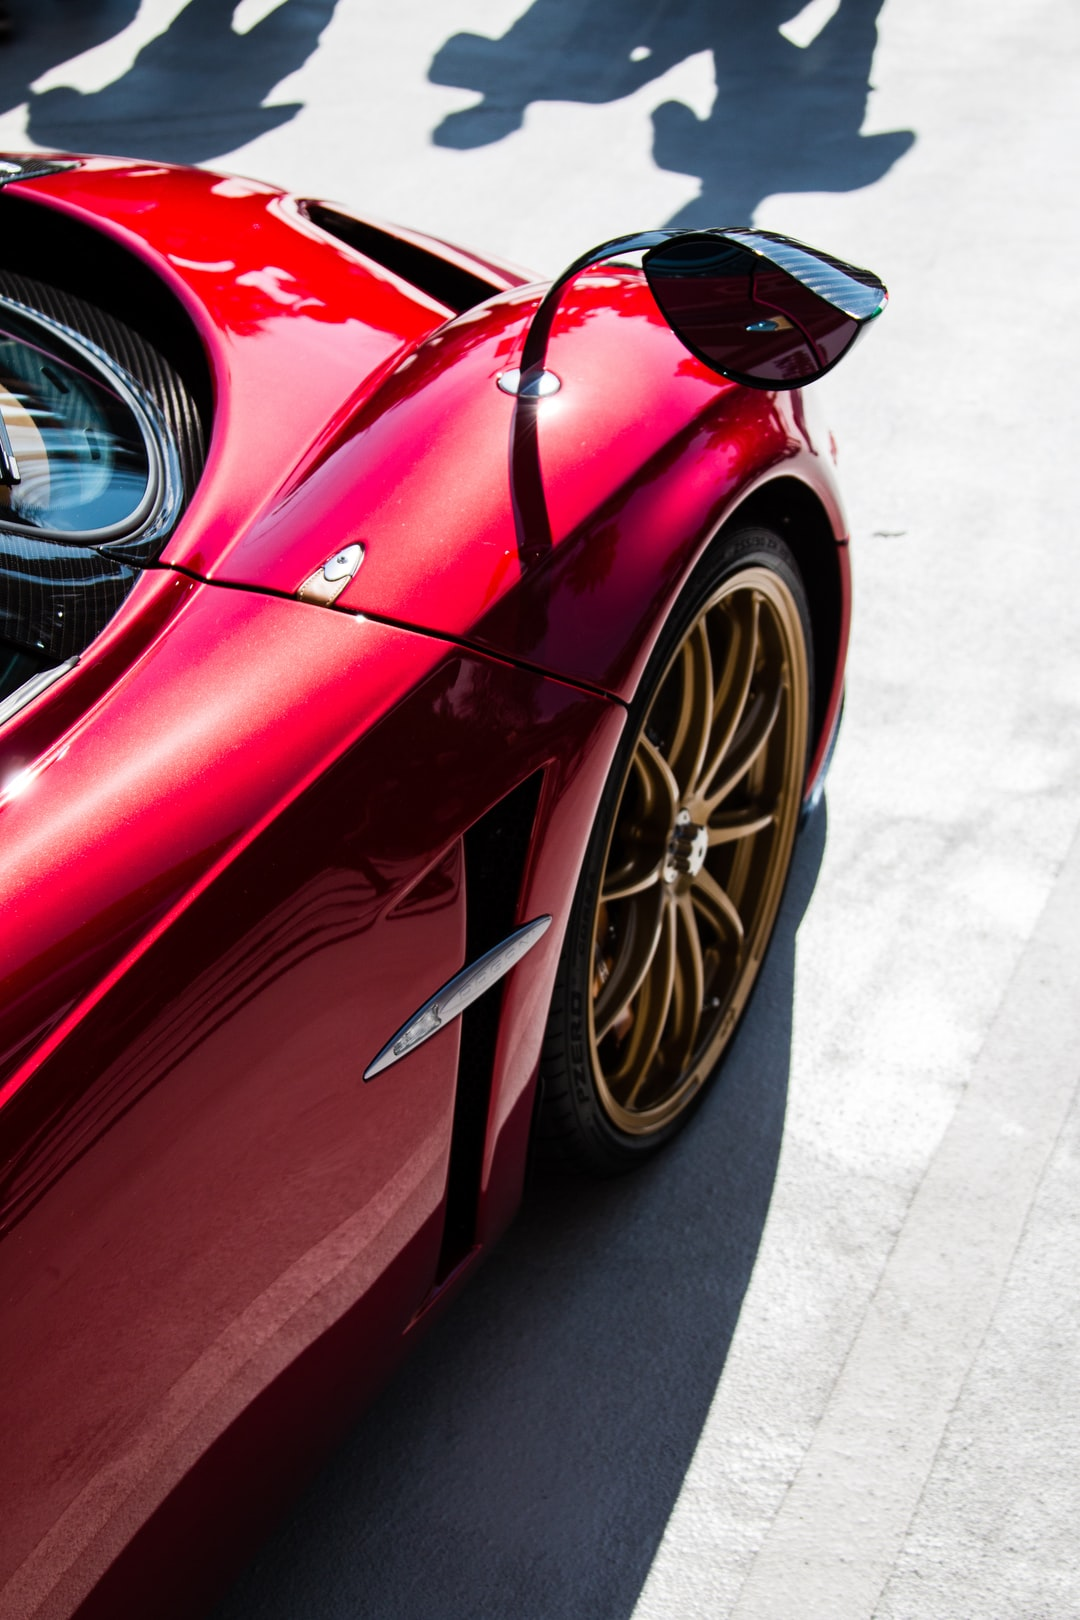 Sports car pictures download free images on unsplash - Sports car pictures download ...